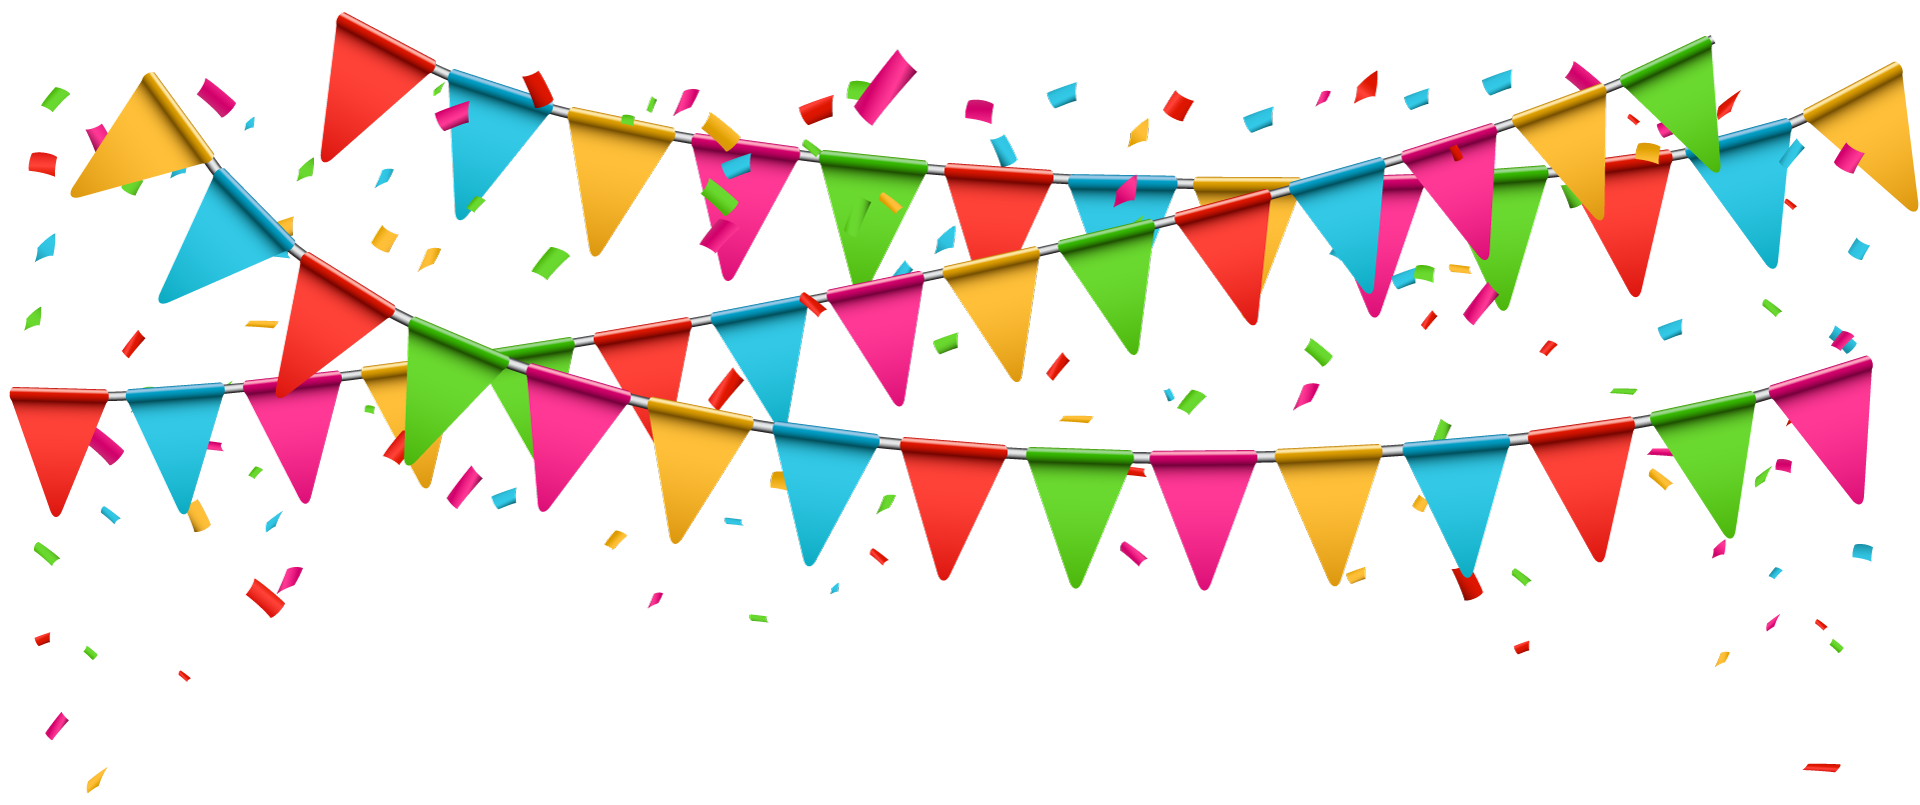 Celebration background png. Birthday party transparent pictures